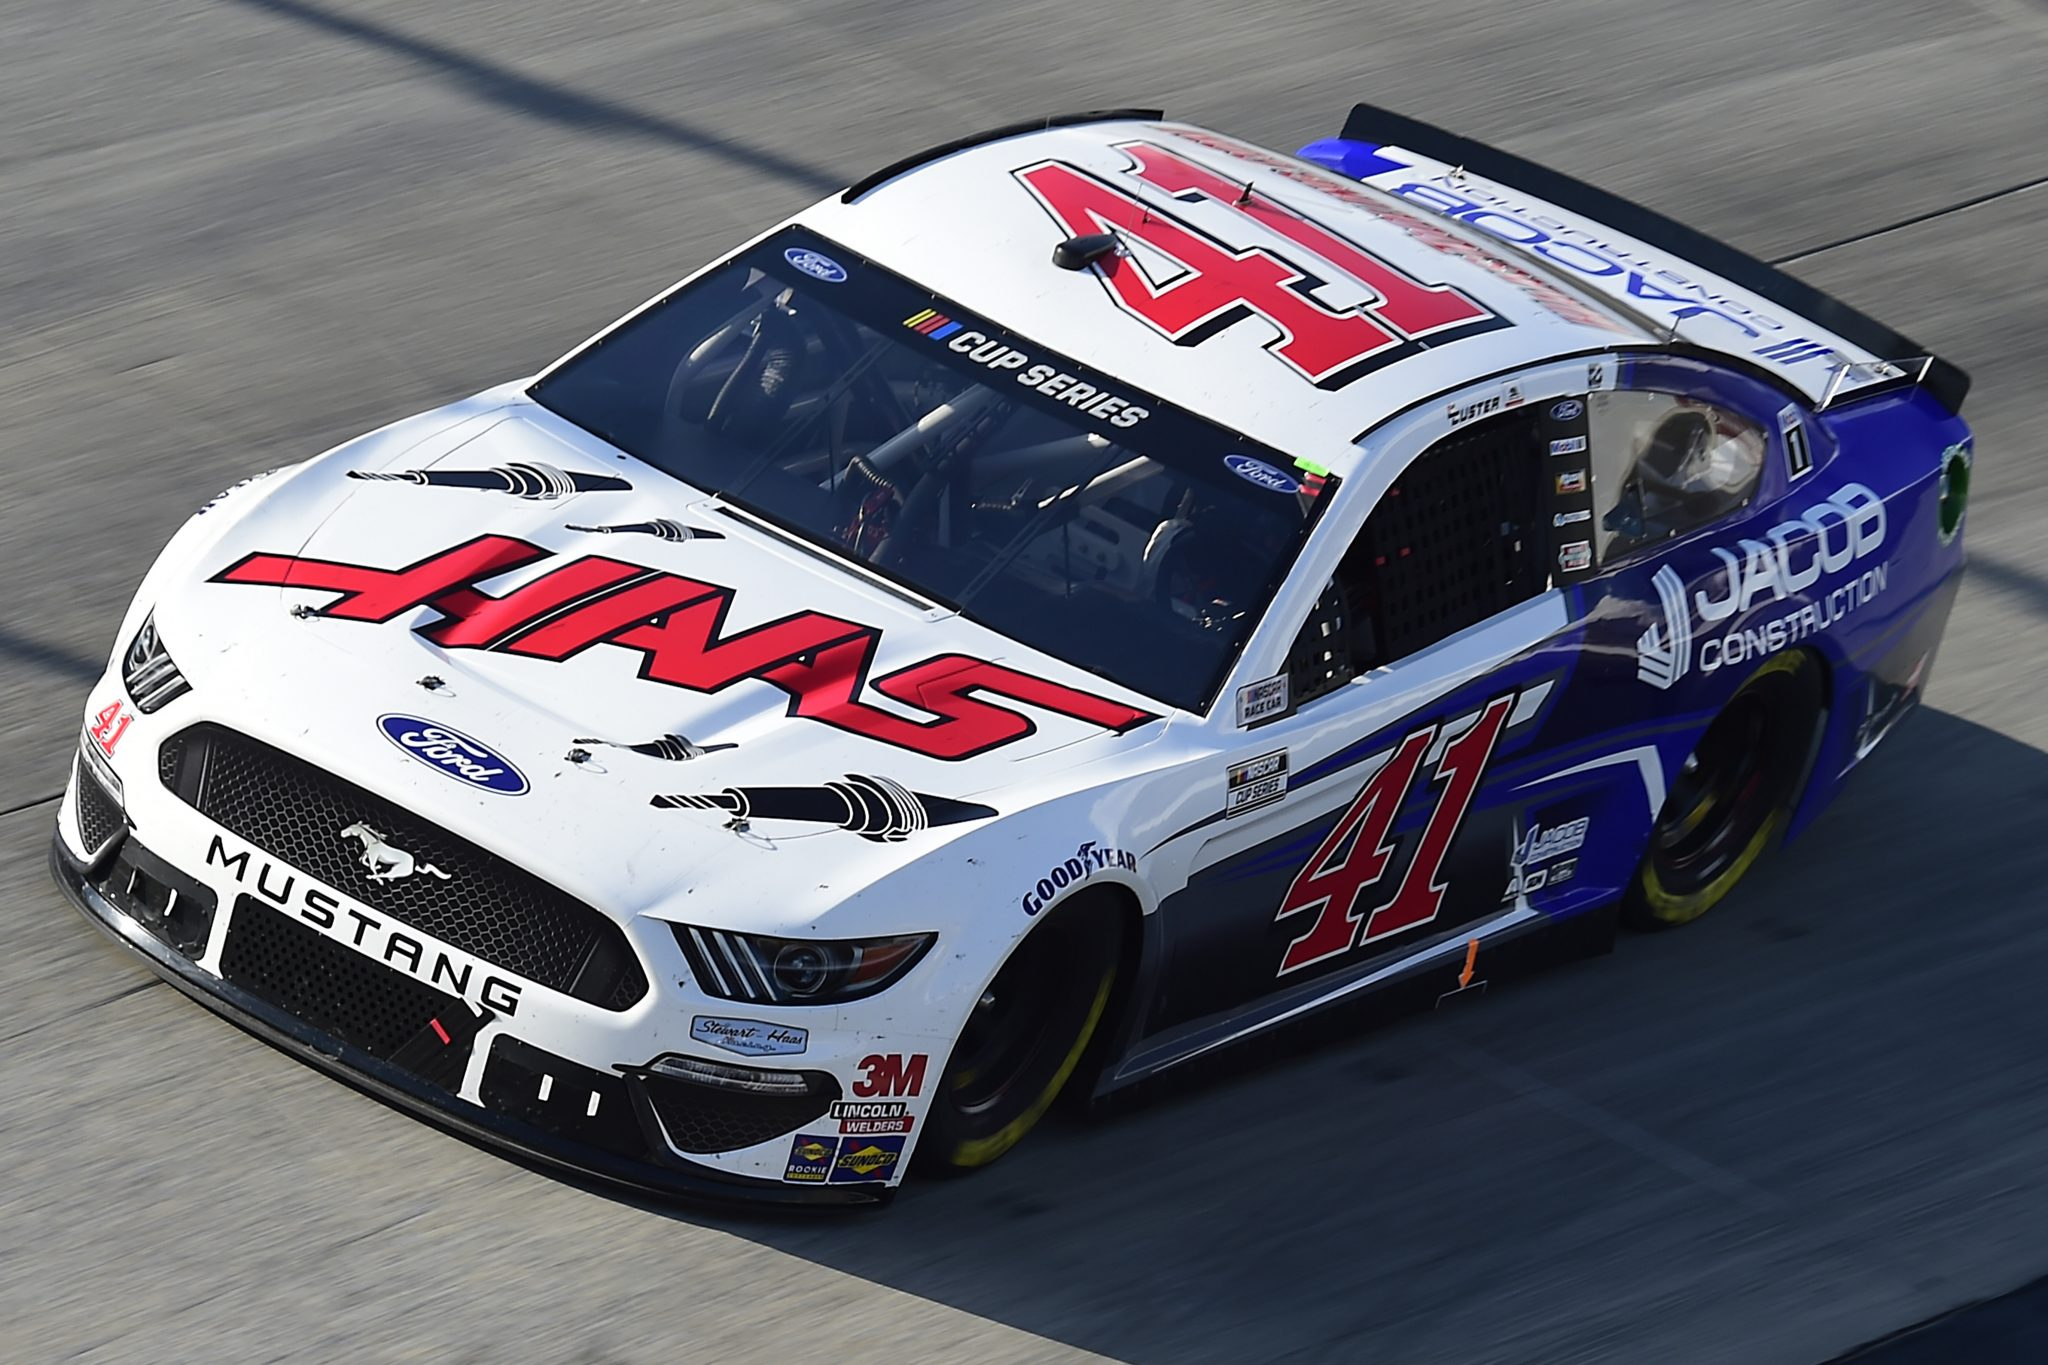 DOVER, DELAWARE - AUGUST 23: Cole Custer, driver of the #41 HaasTooling.com/Jacom Co Ford, drives during the NASCAR Cup Series Drydene 311 at Dover International Speedway on August 23, 2020 in Dover, Delaware. (Photo by Jared C. Tilton/Getty Images) | Getty Images